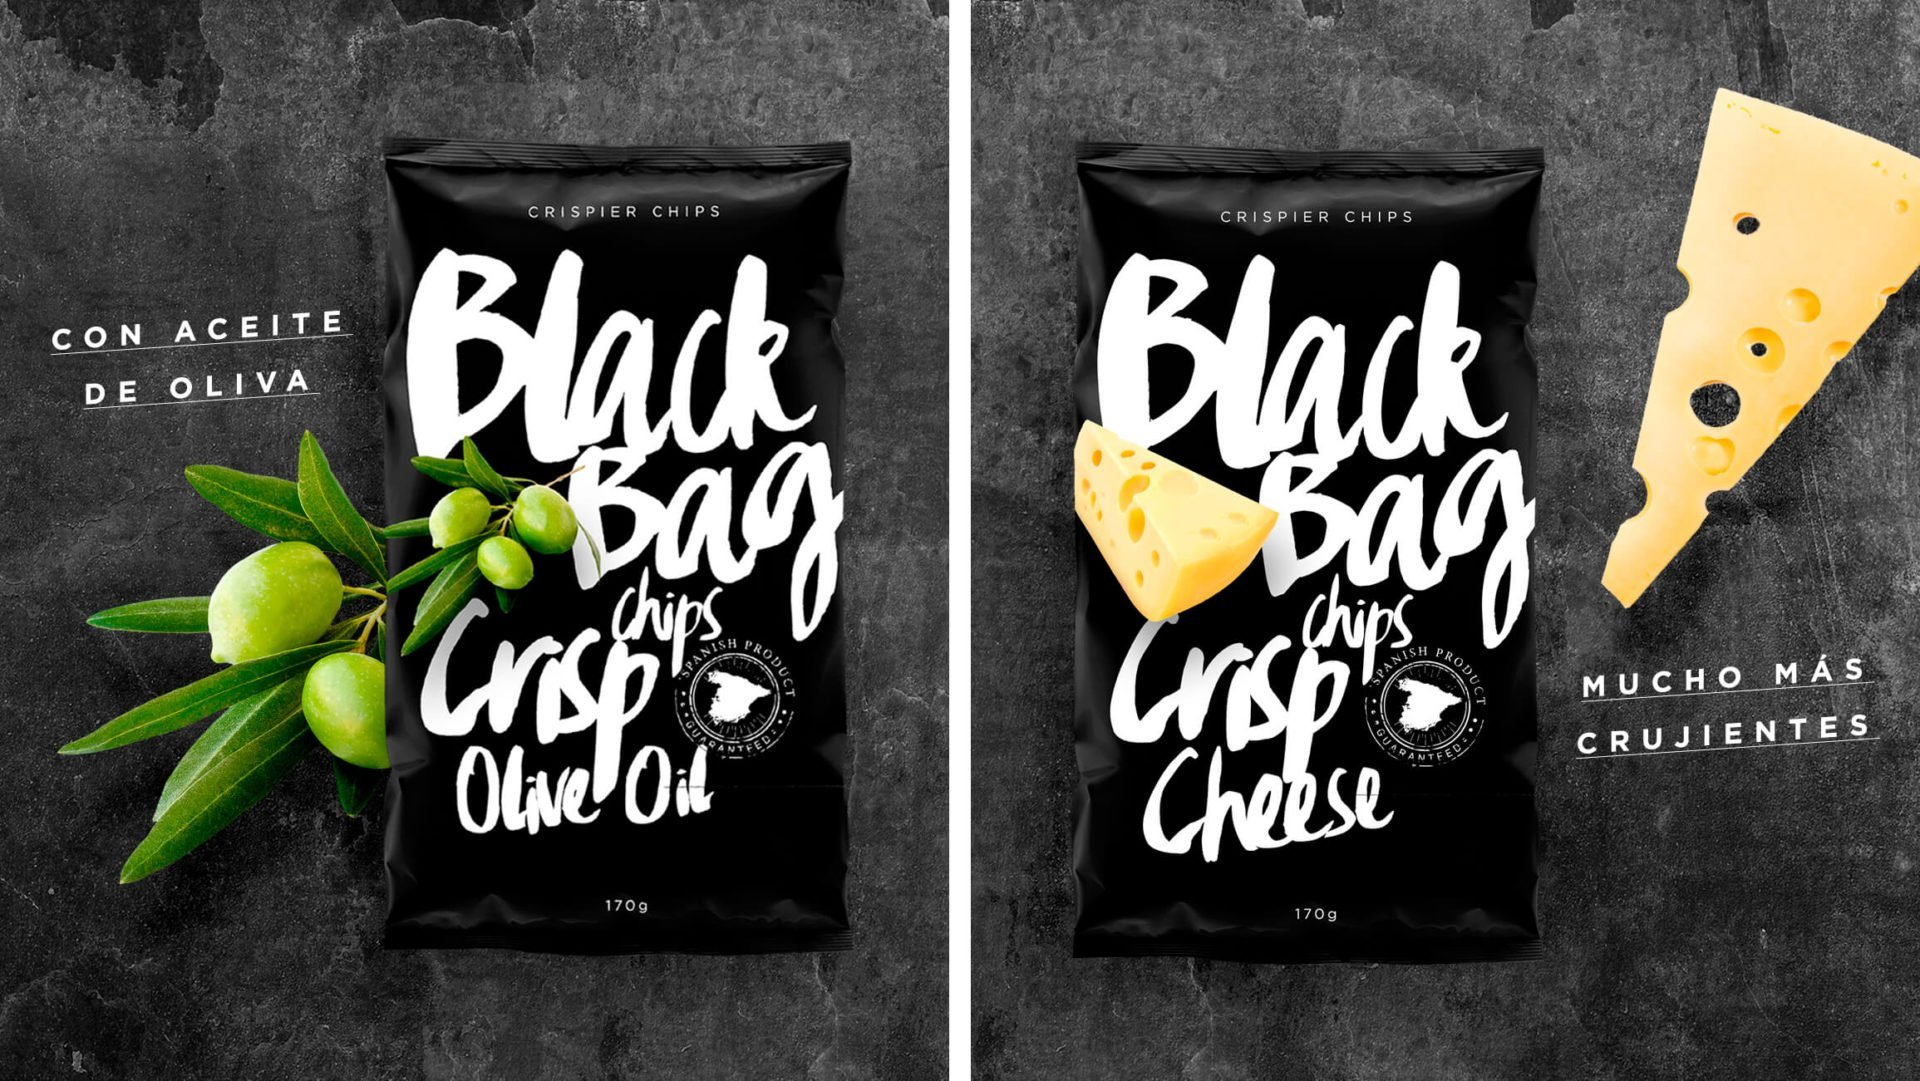 bodegon-packaging-chips-black-bag-02